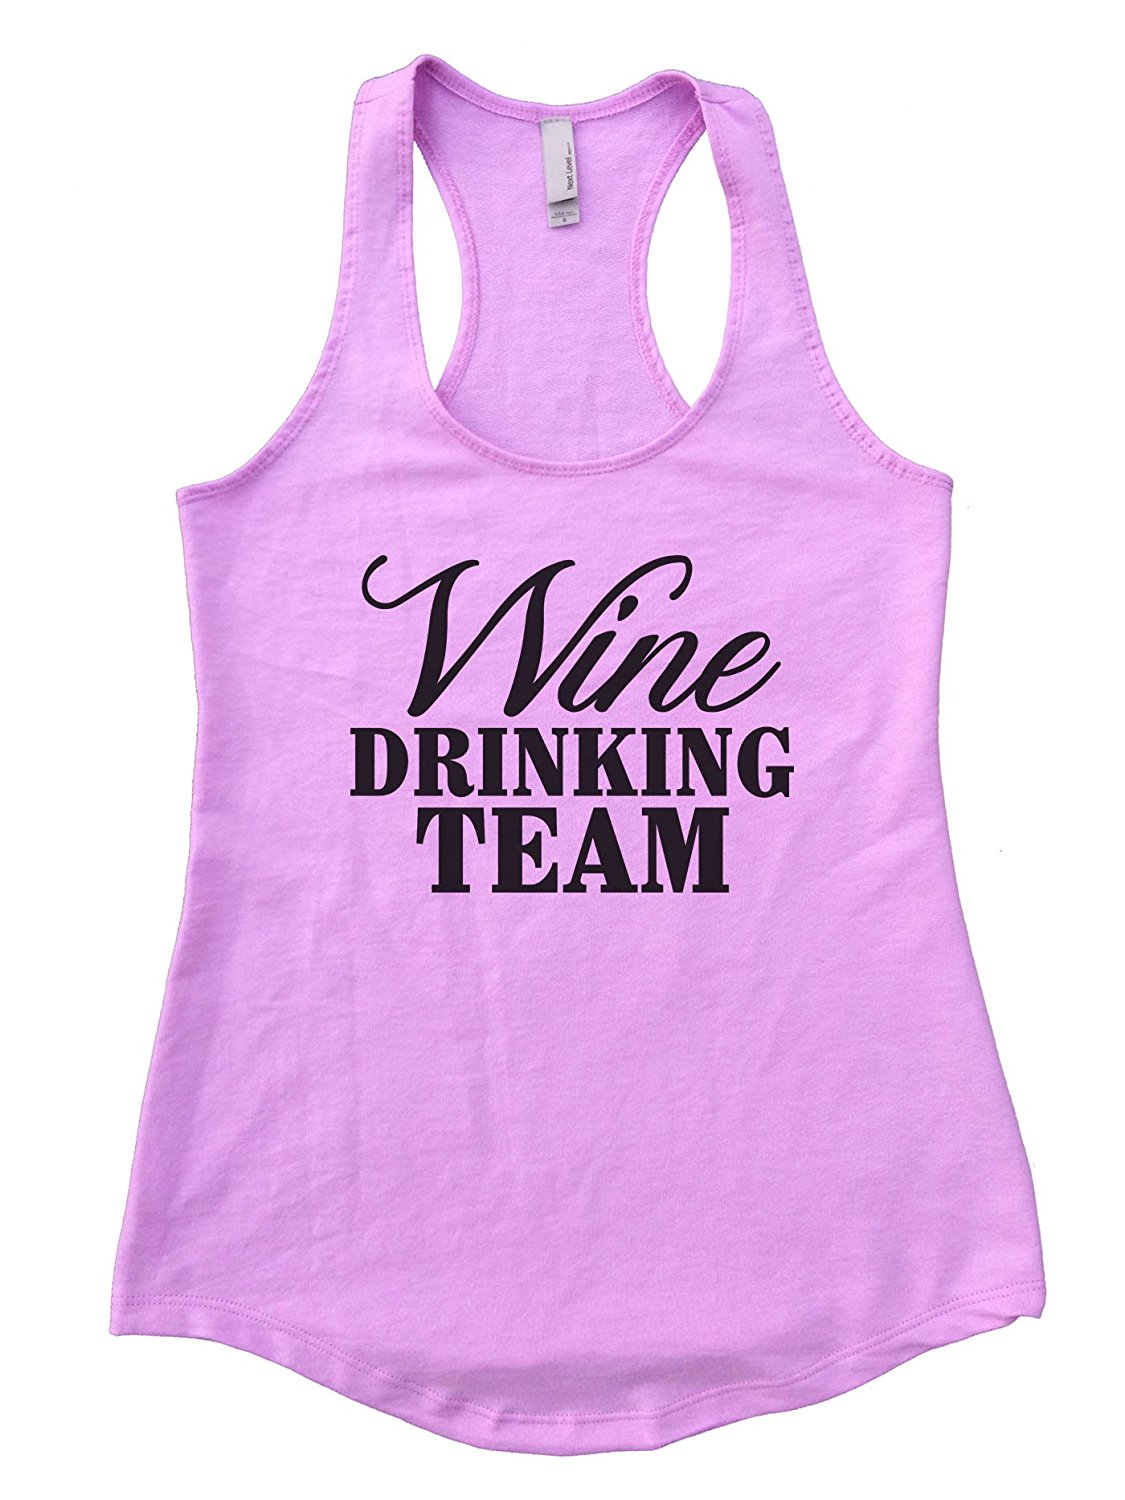 Cheap Funny Wine Team Names, find Funny Wine Team Names